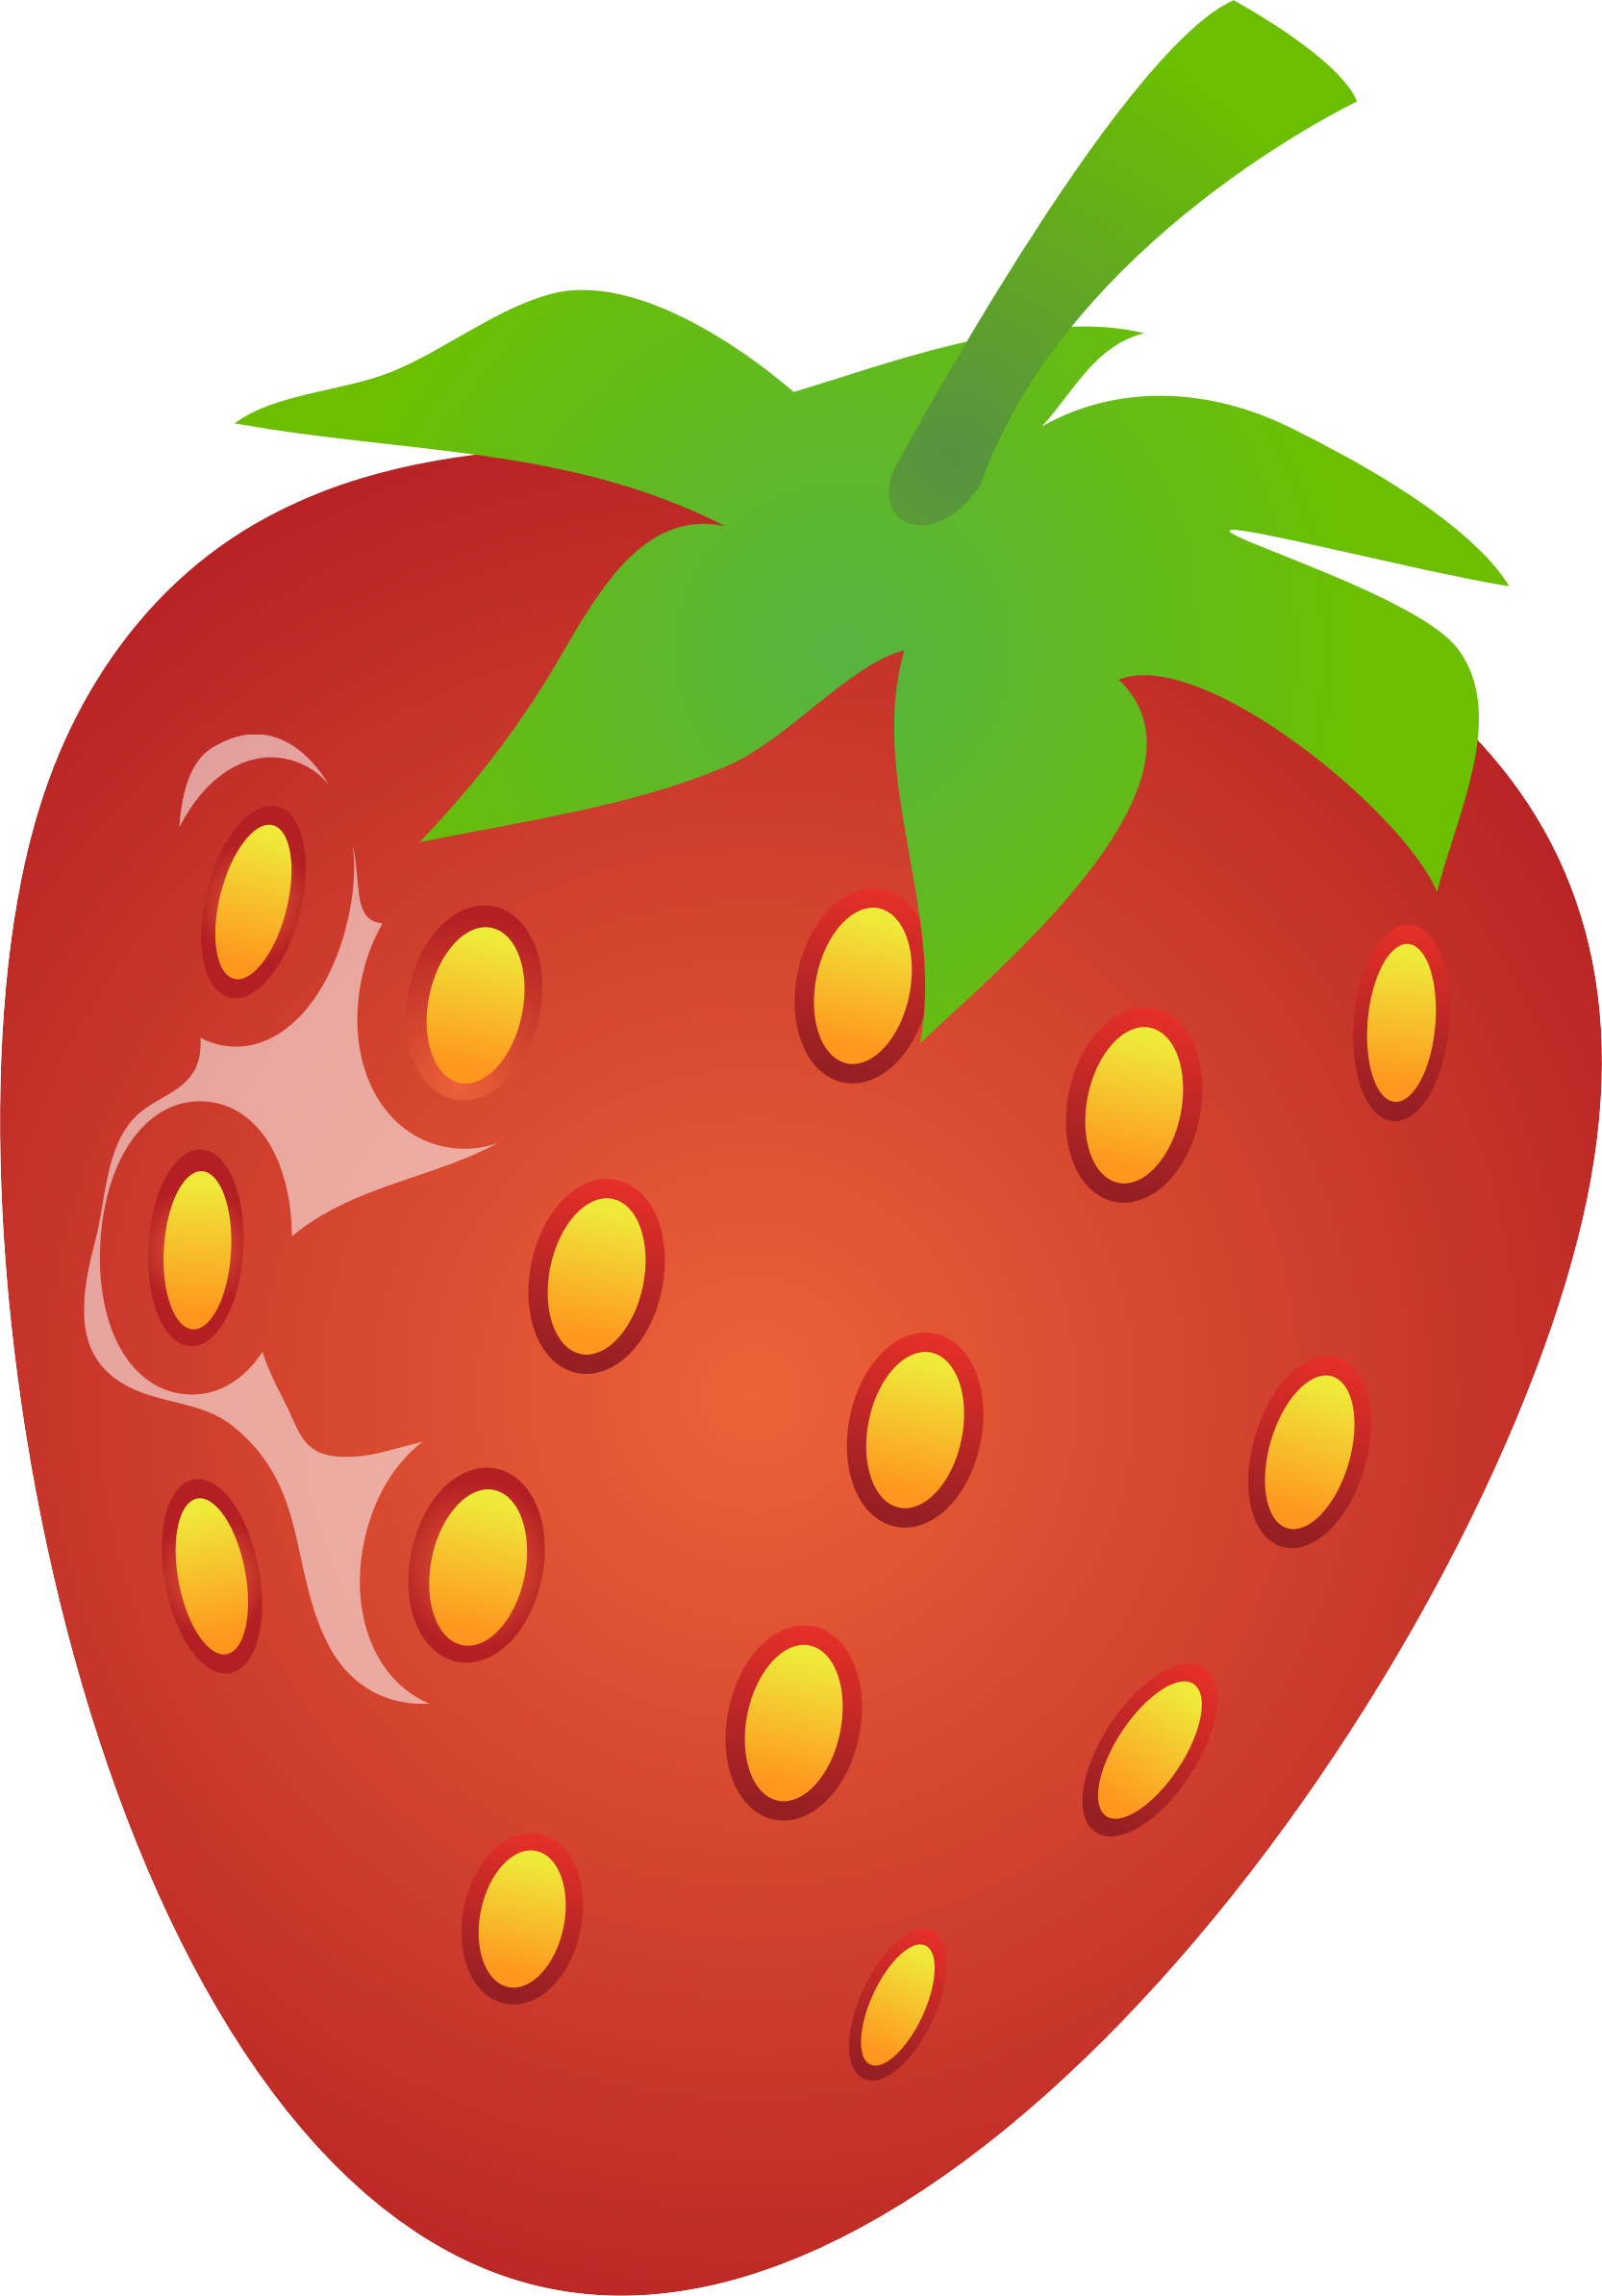 Strawberries clipart pdf. Strawberry big image png